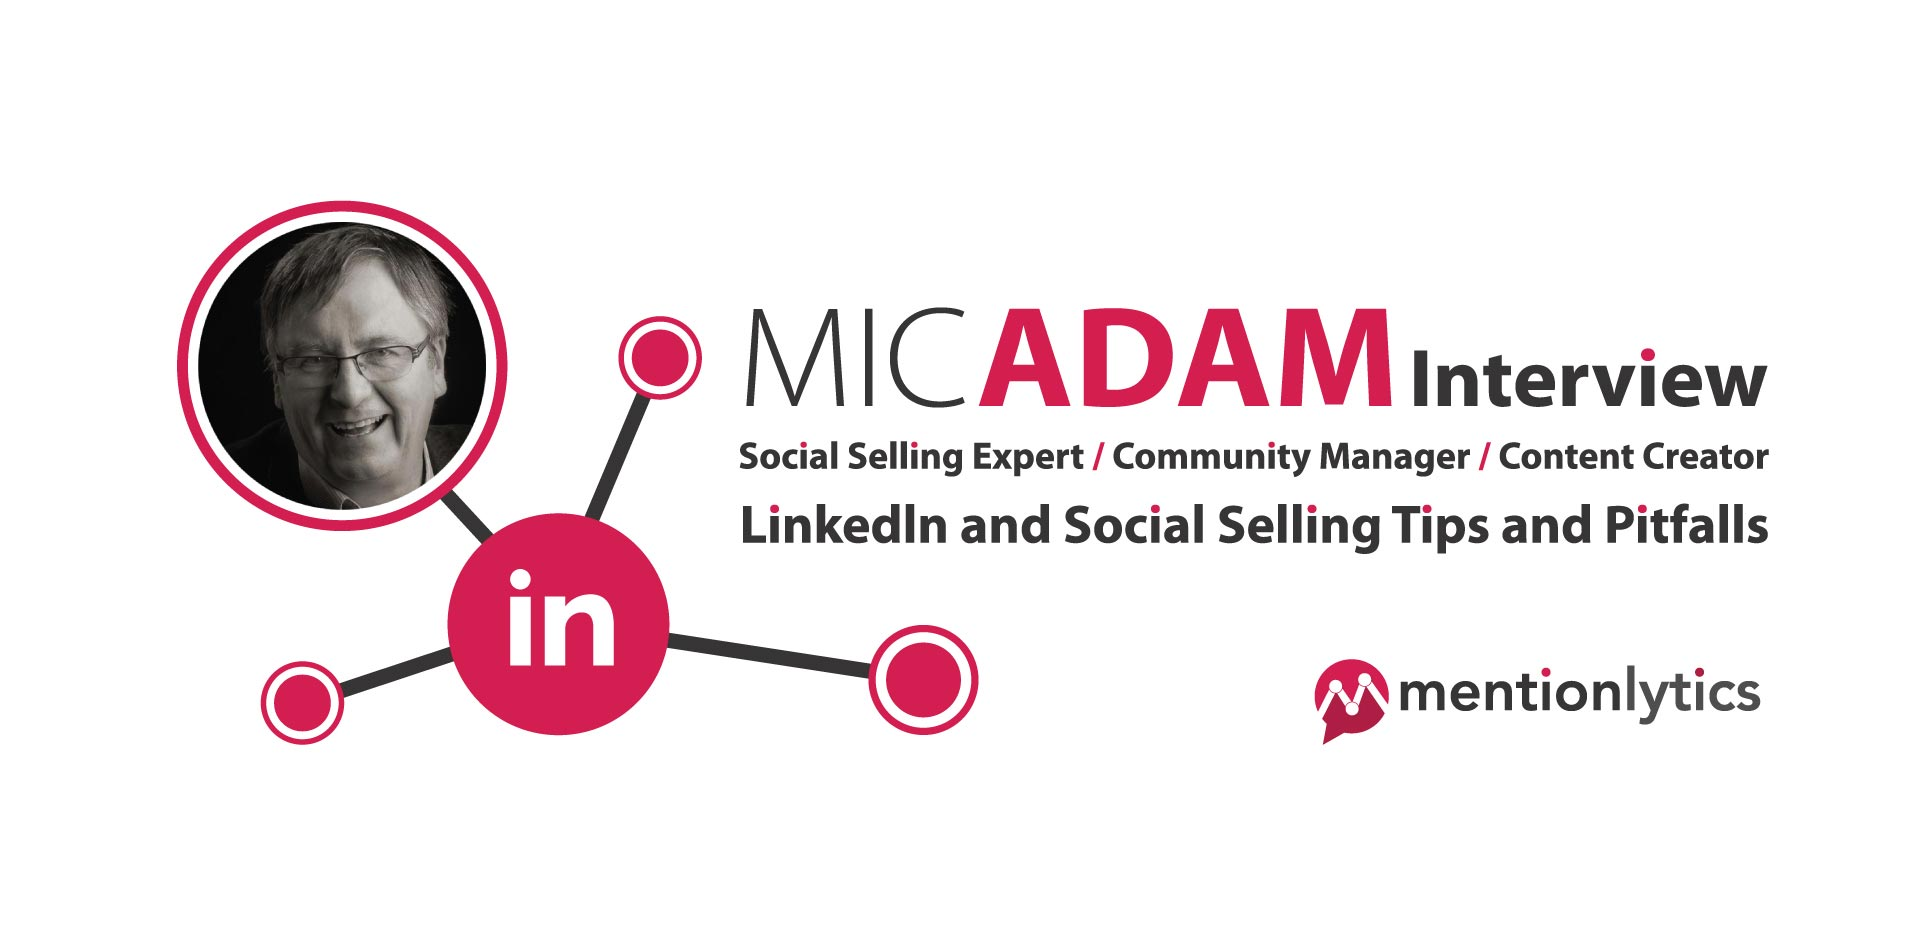 Mic Adam Interview: LinkedIn and Social Selling Tips and Pitfalls